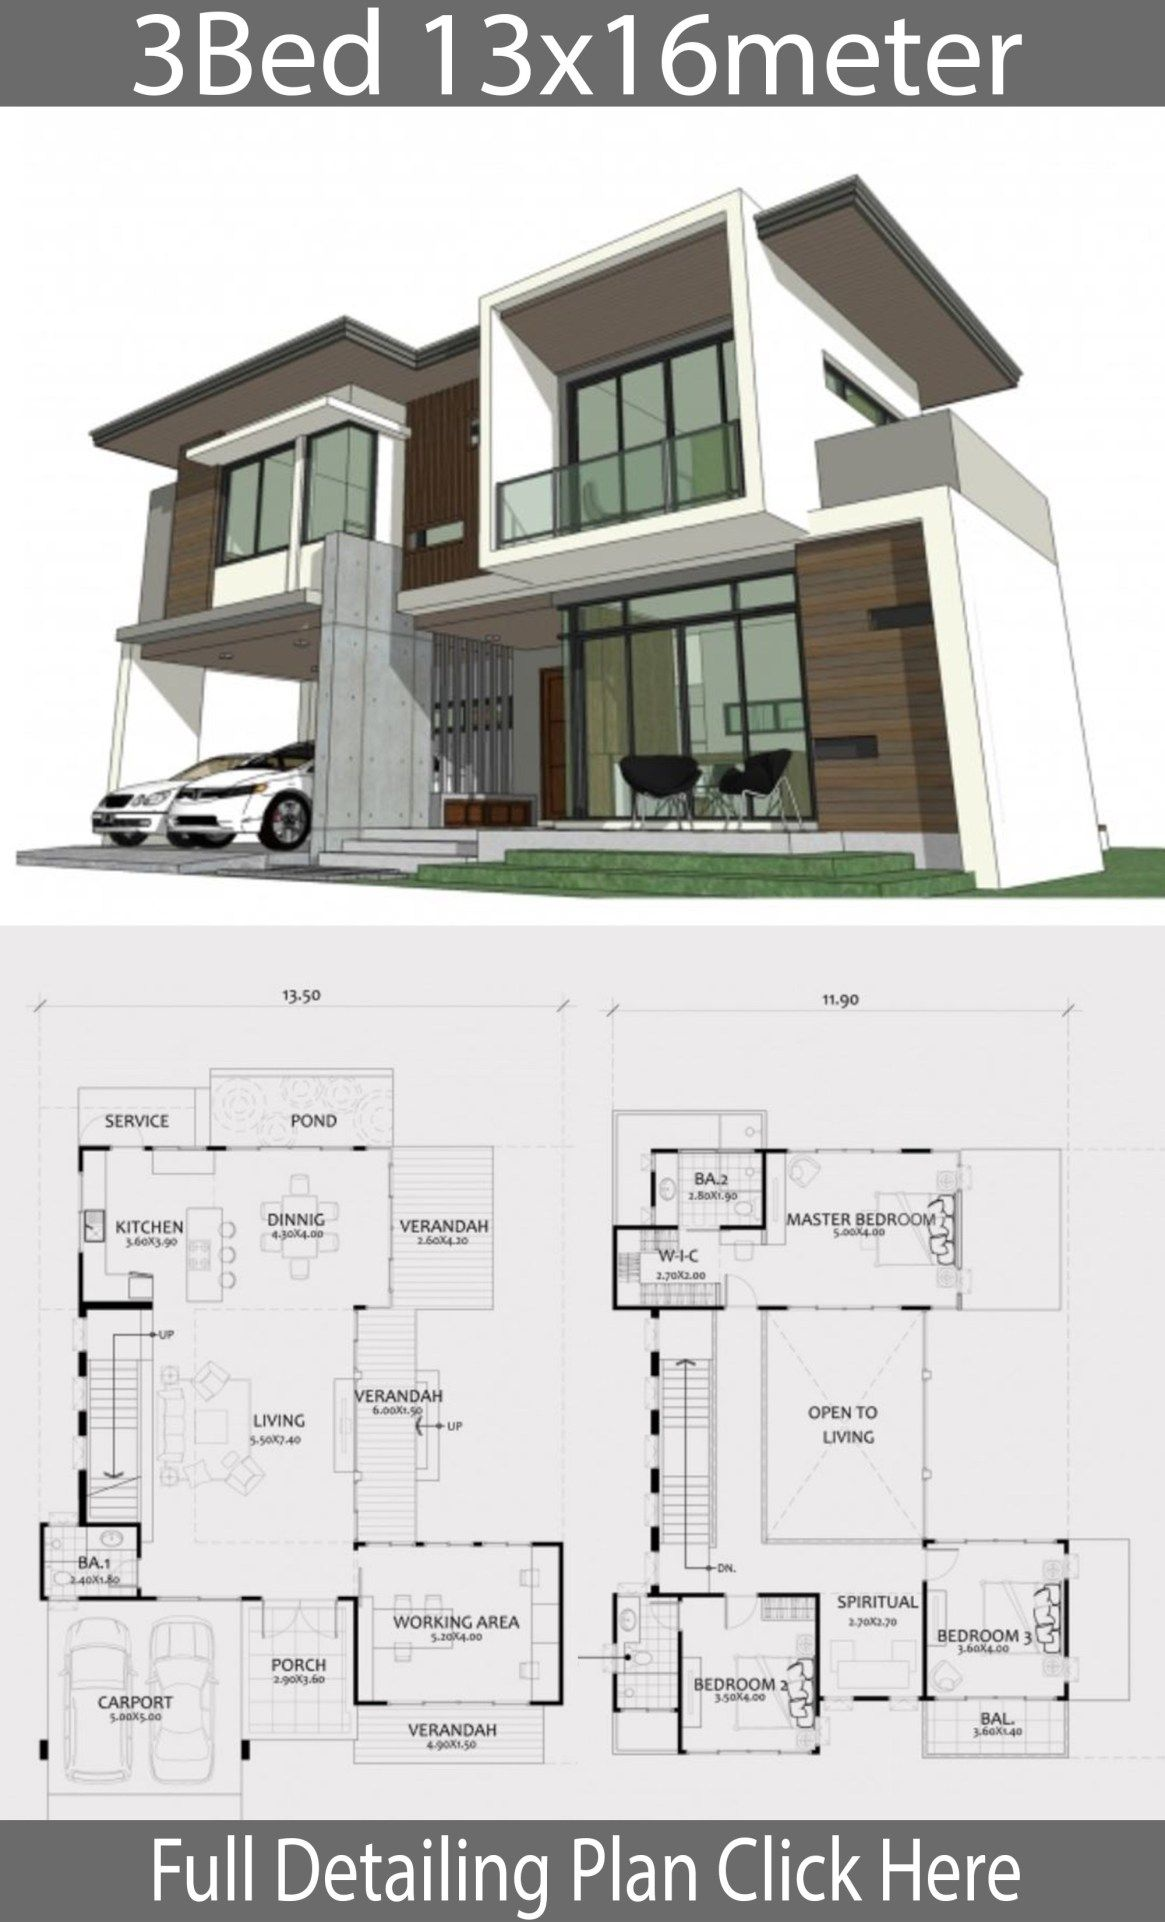 Home Design Plan 13x16m With 3 Bedrooms Home Design With Plansearch Home Design Plan House Plans Architecture House